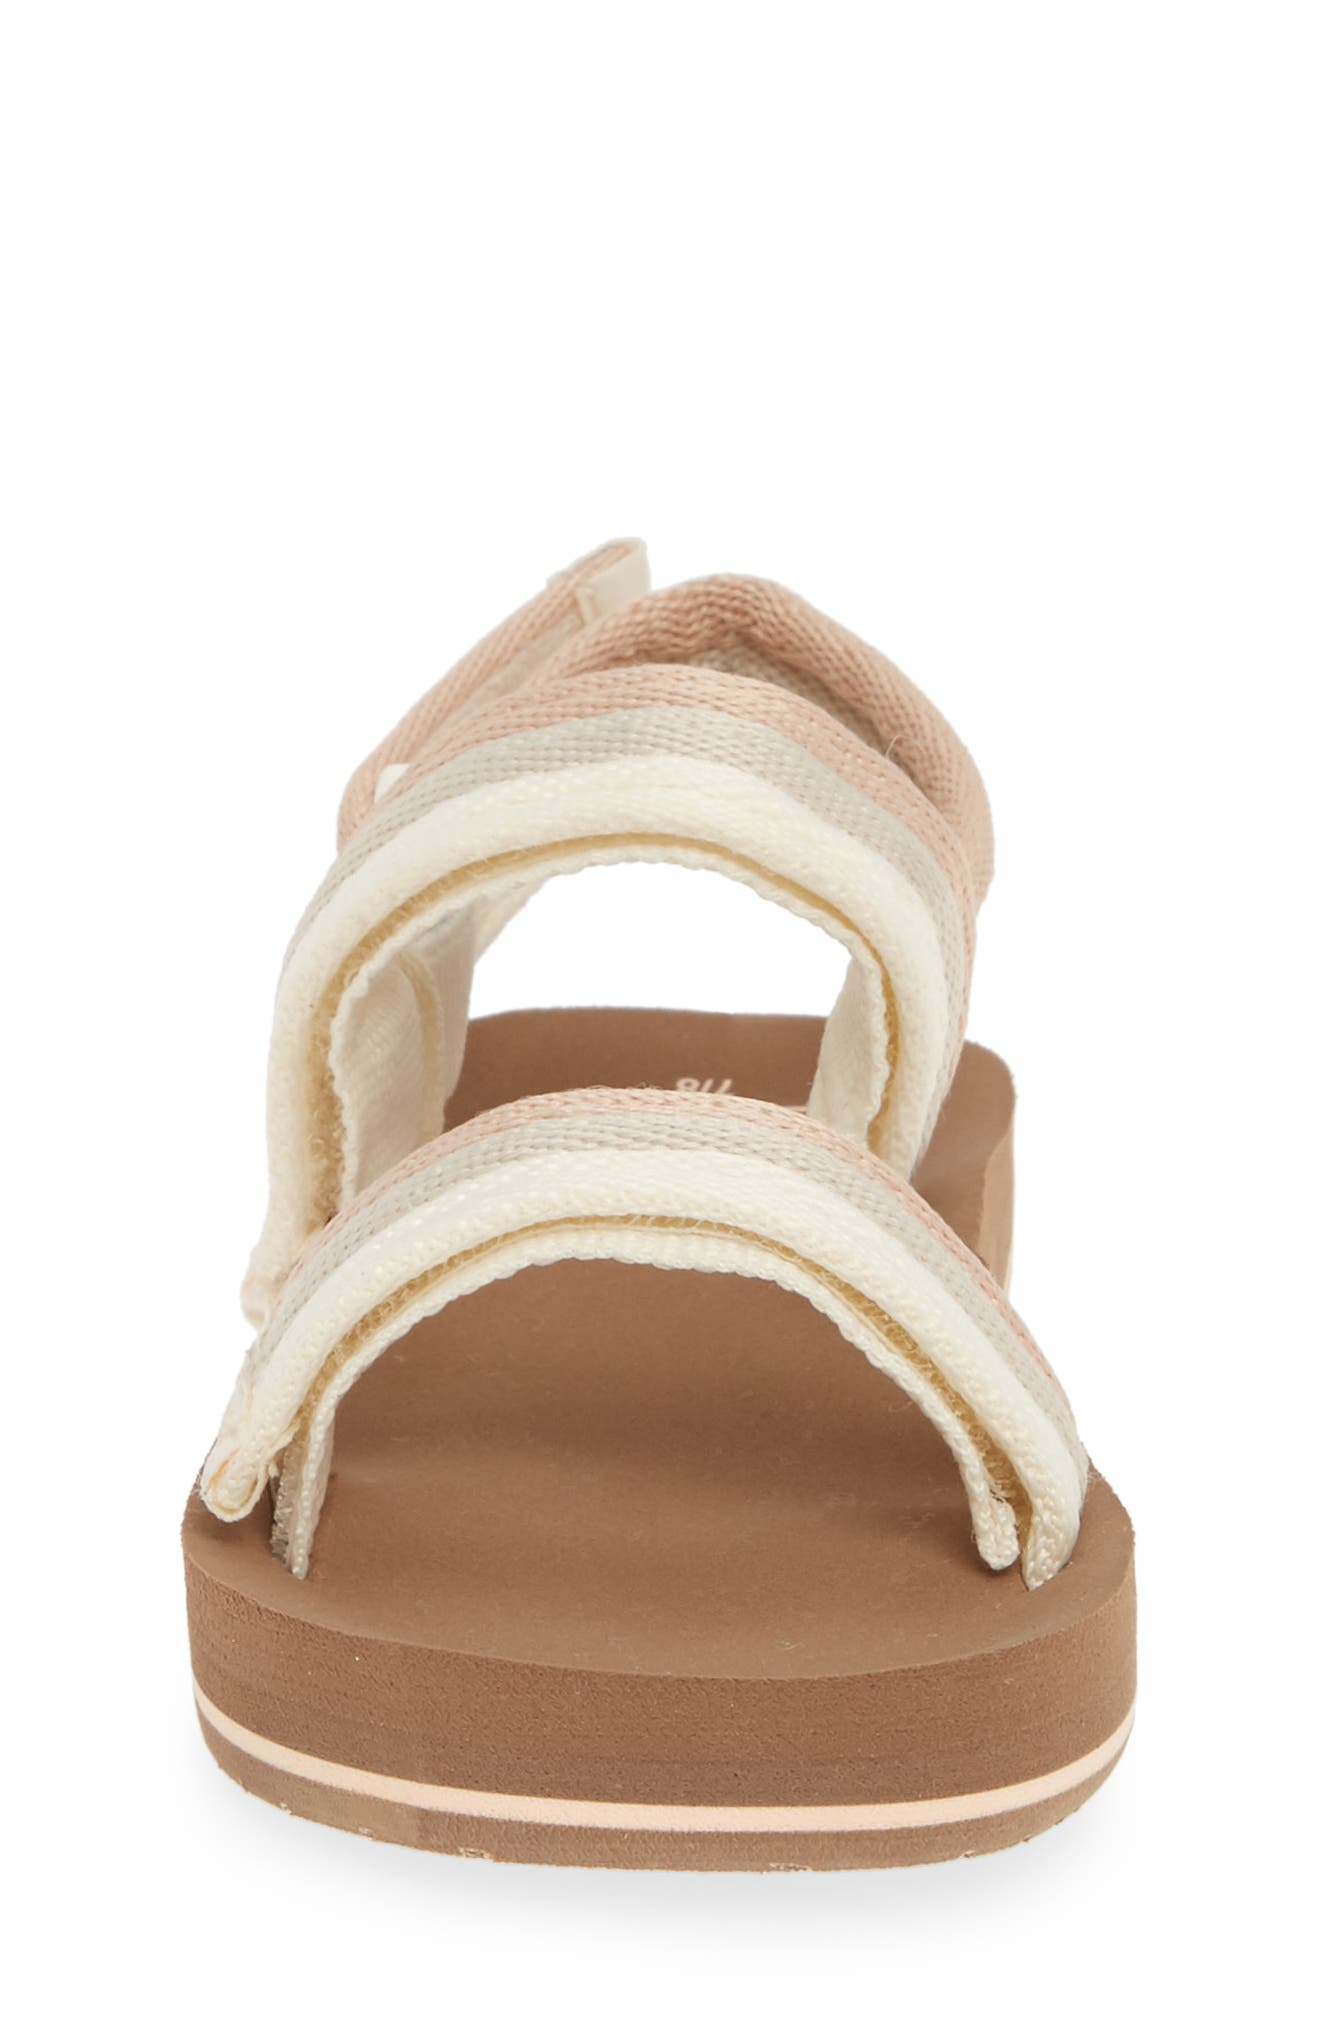 REEF, Little Ahi Convertible Sandal, Alternate thumbnail 4, color, SANDY TOES